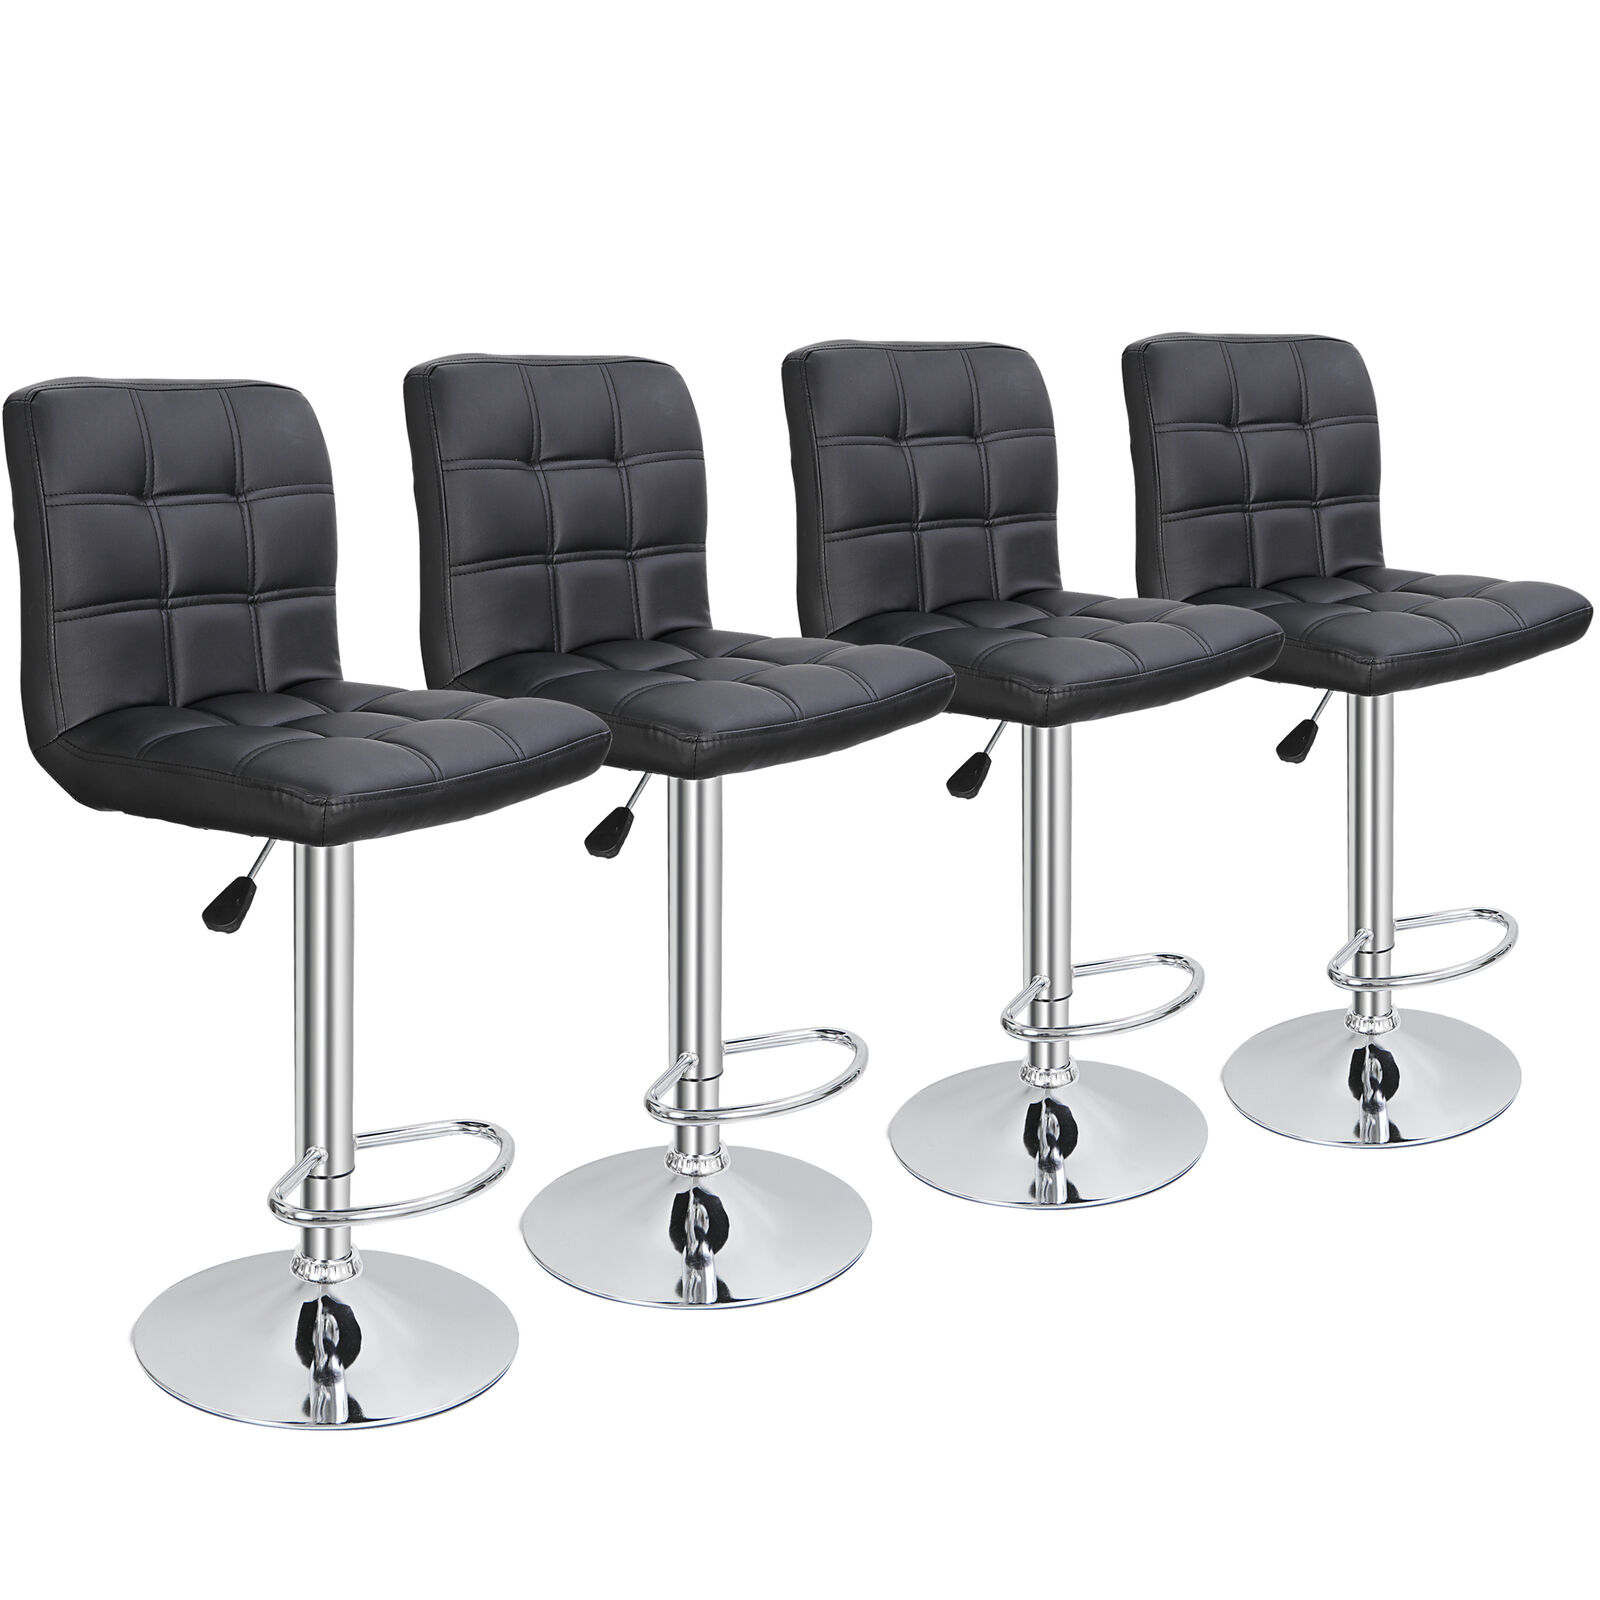 4PCS Adjustable Bar Stools PU Leather Modern Dinning Chair with Back Benches, Stools & Bar Stools